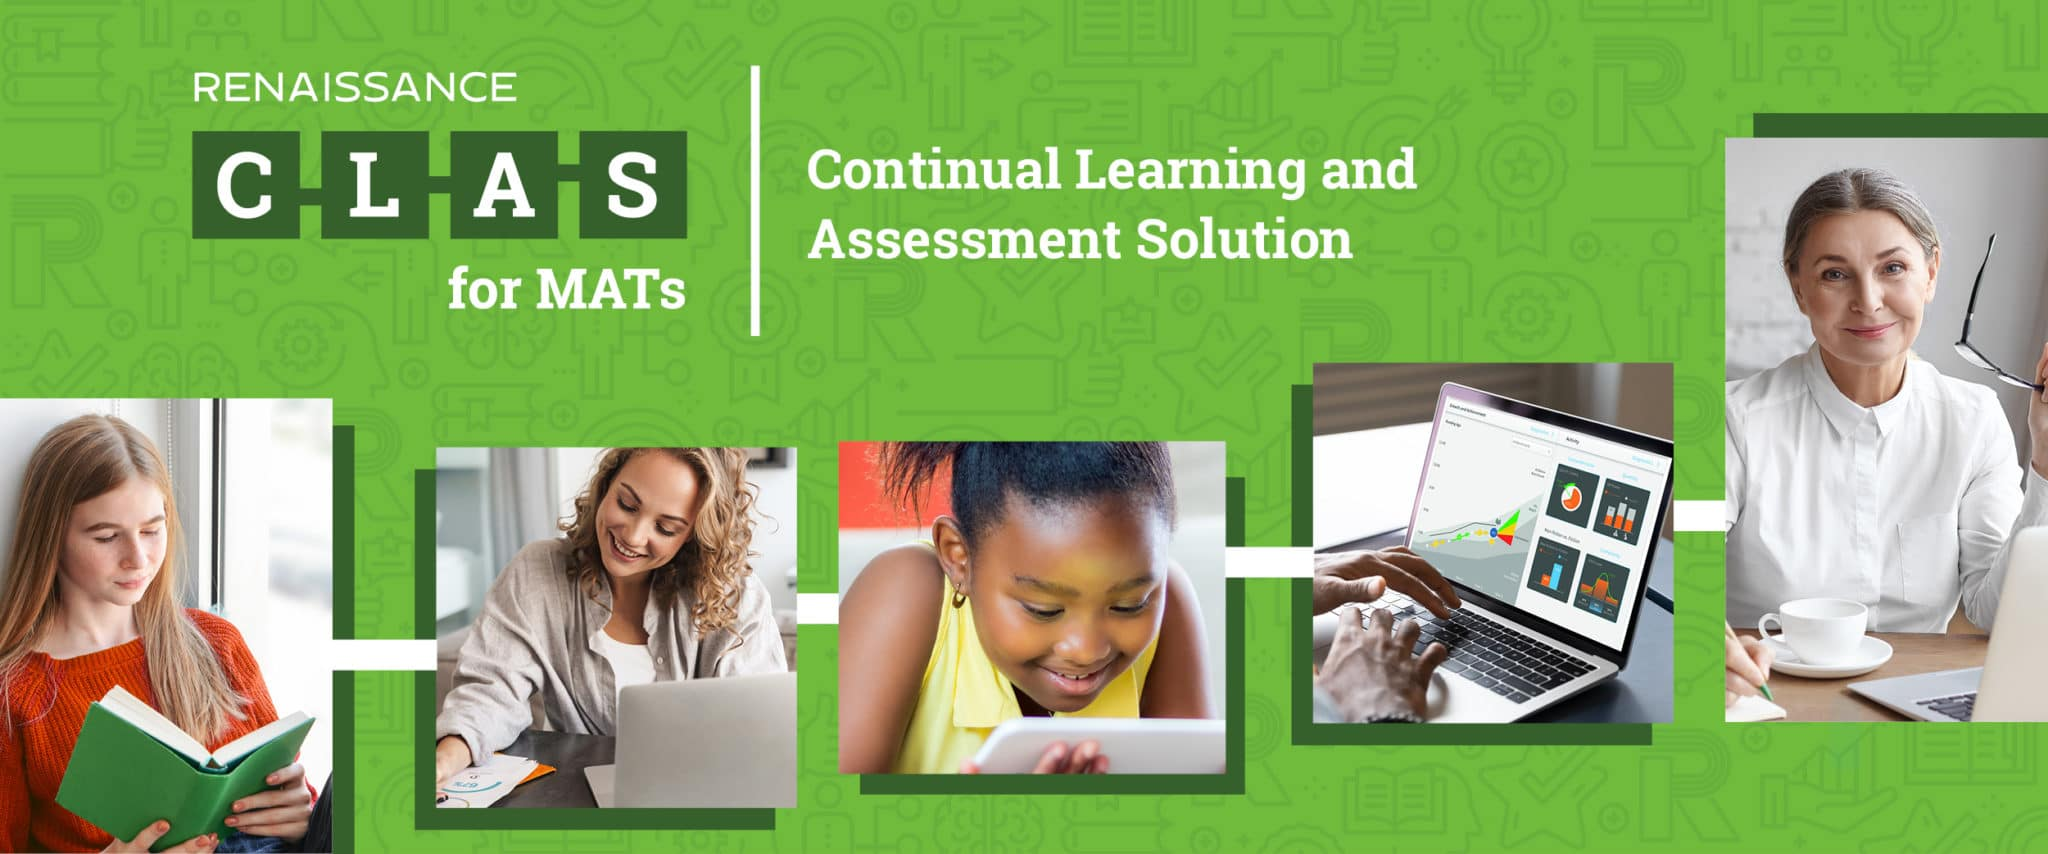 Renaissance Continual Learning and Assessment Solution for MATs